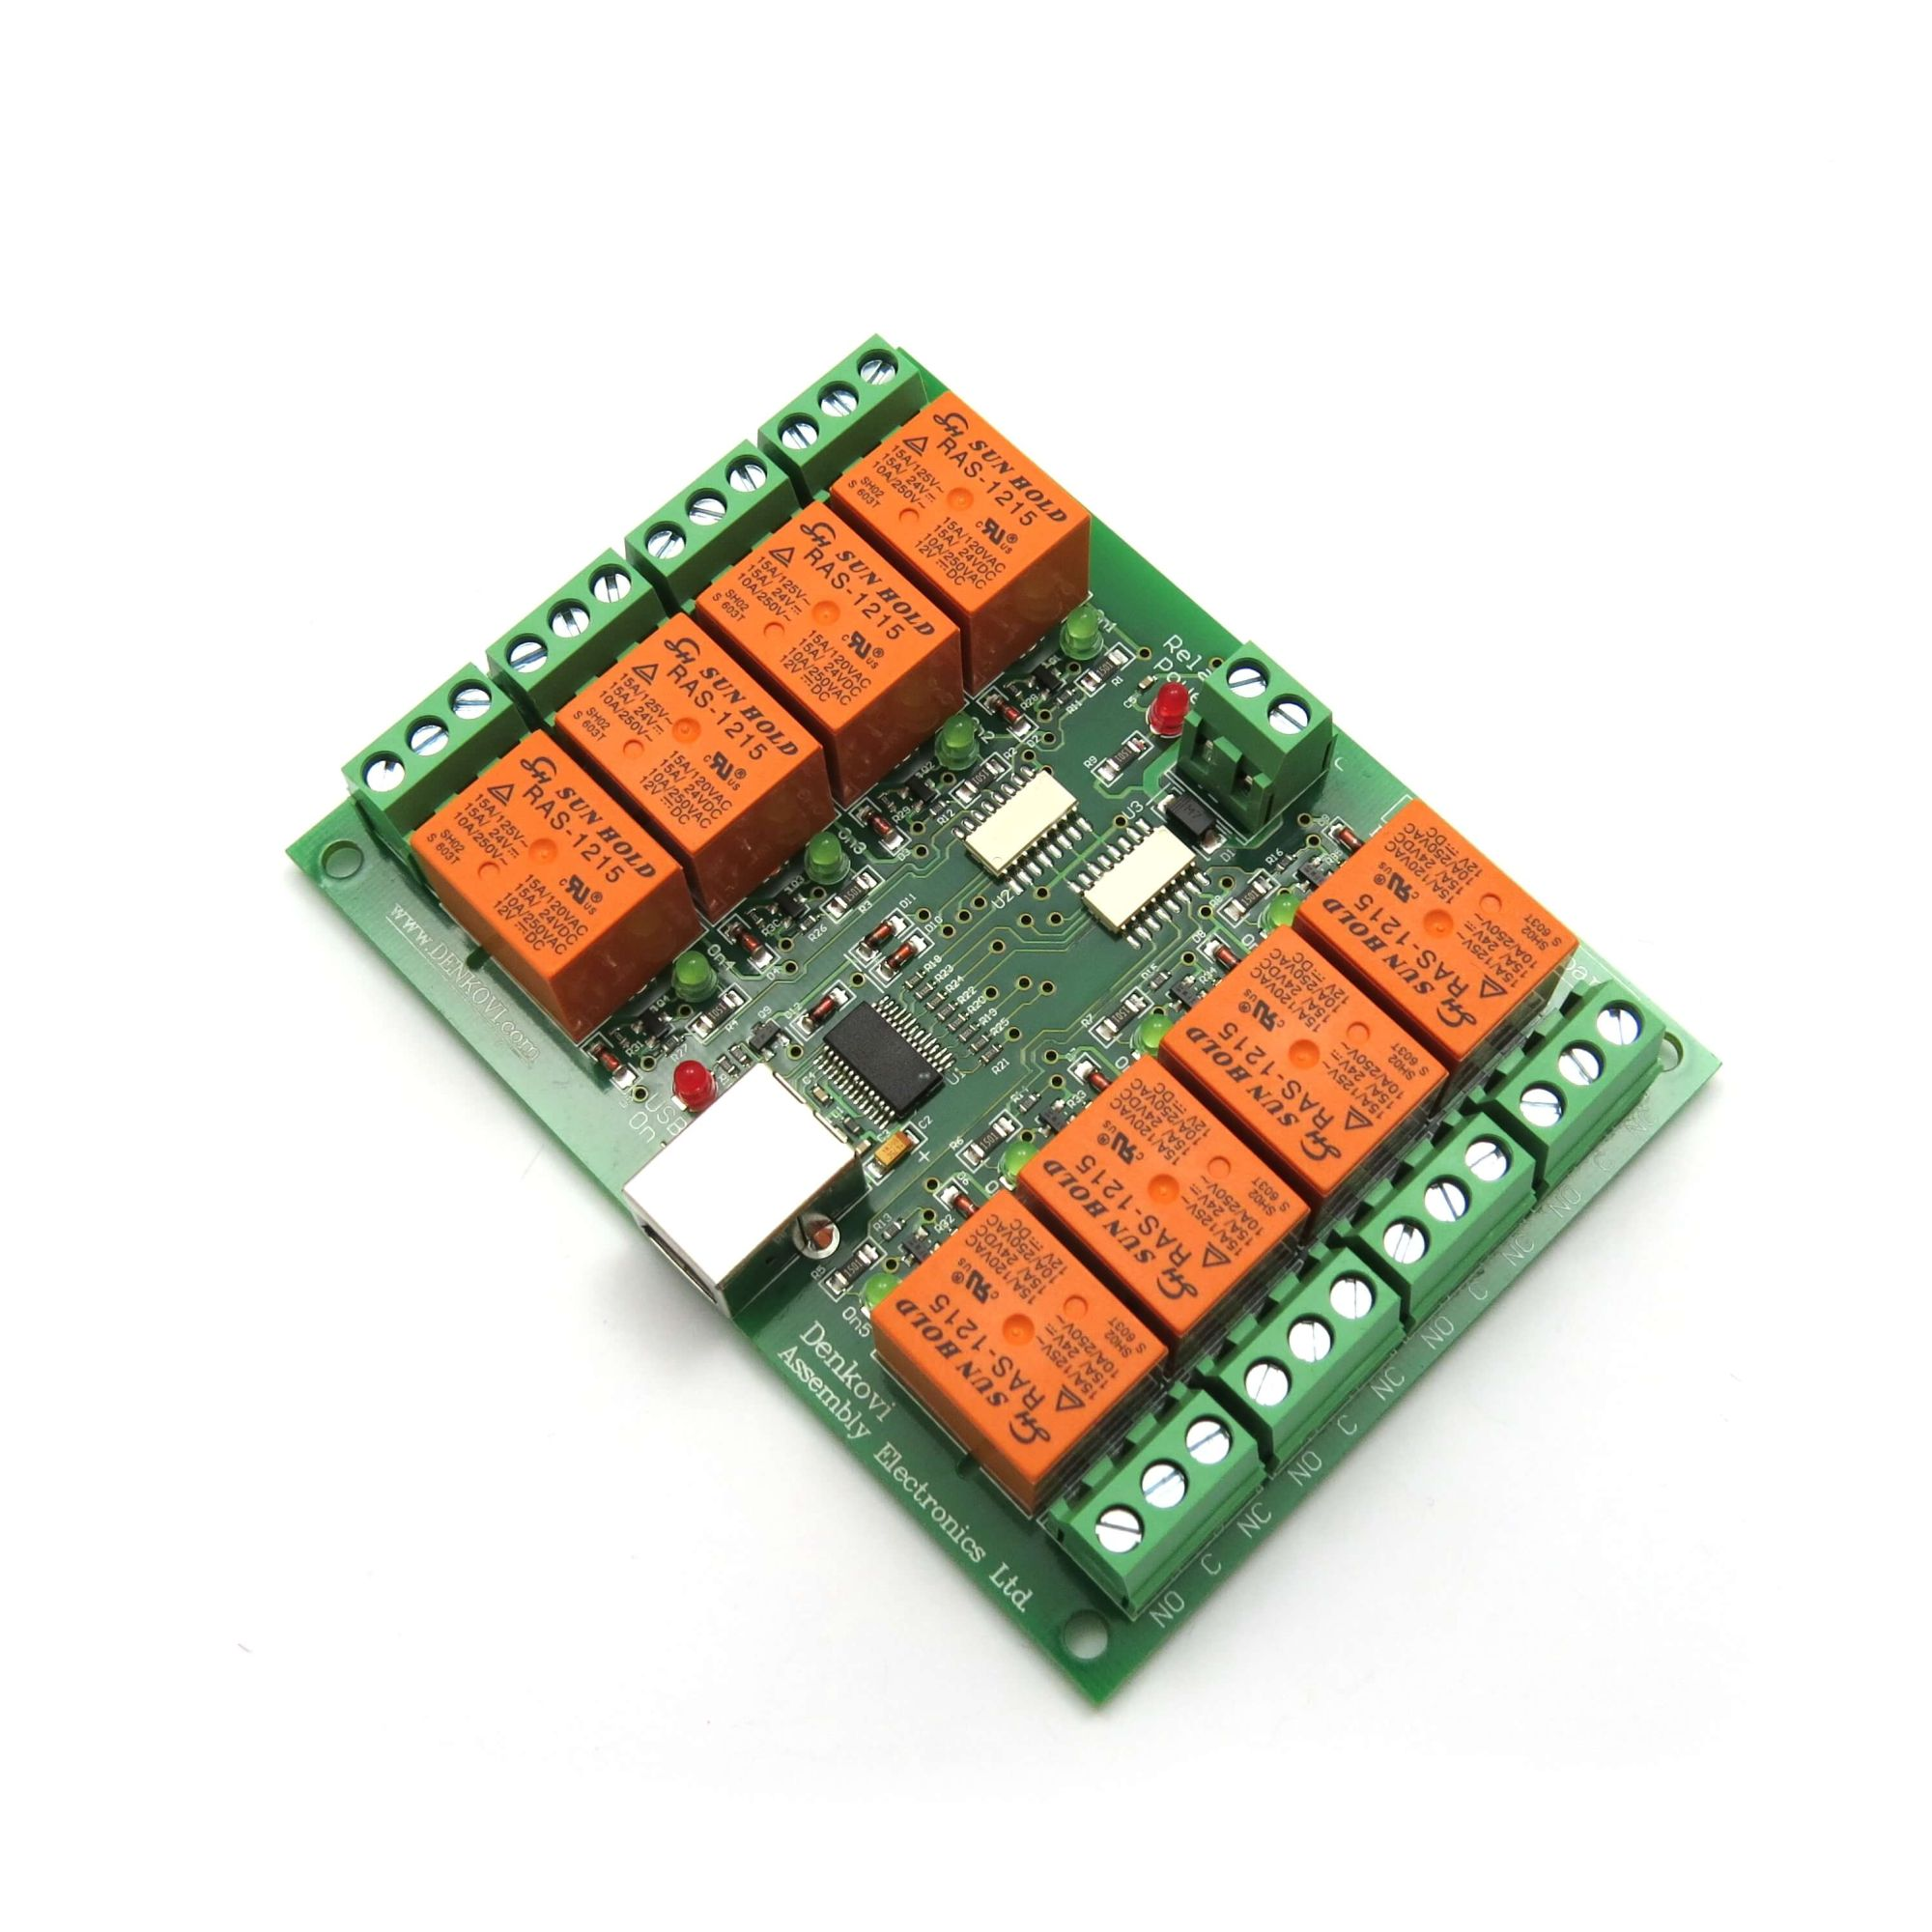 Details about USB Eight Channel Relay Board for Automations - 12V